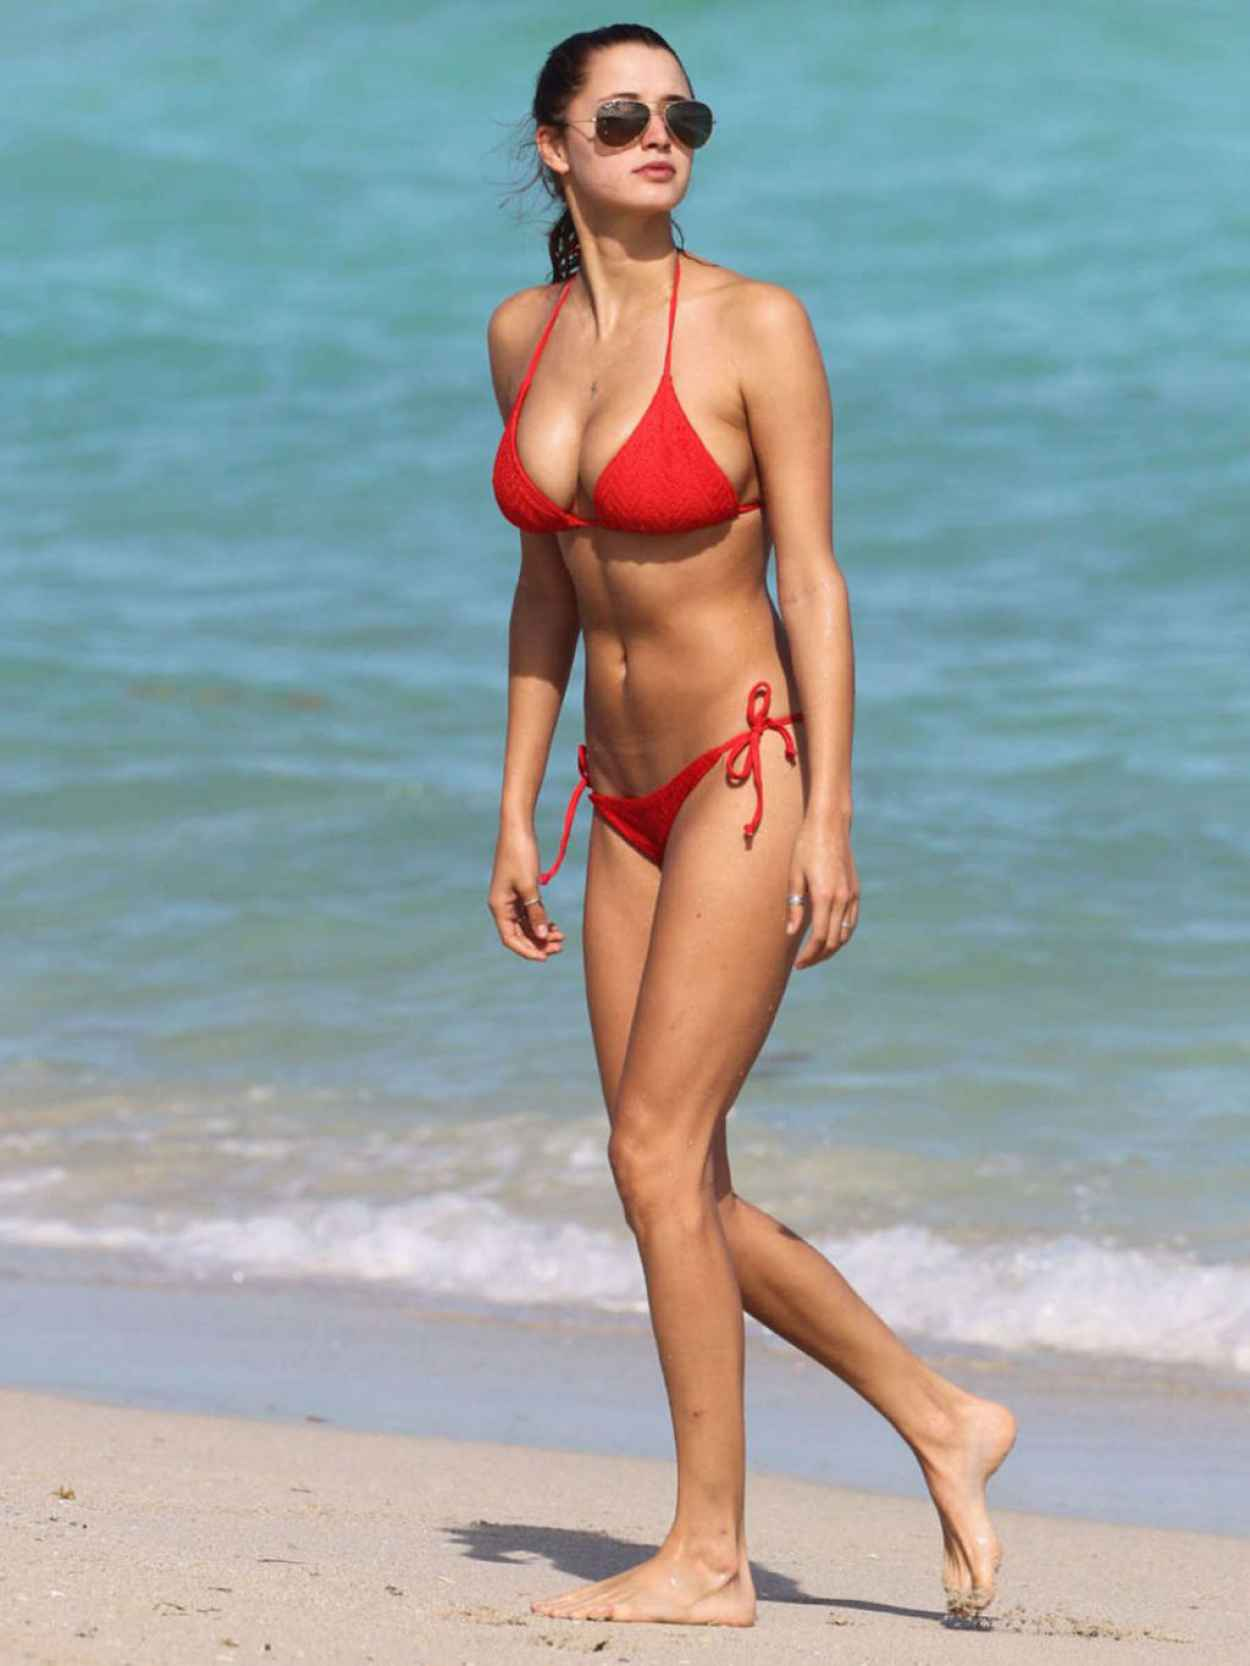 Alyssa Arce in a Bikini on the Beach in Miami - November 2015-1